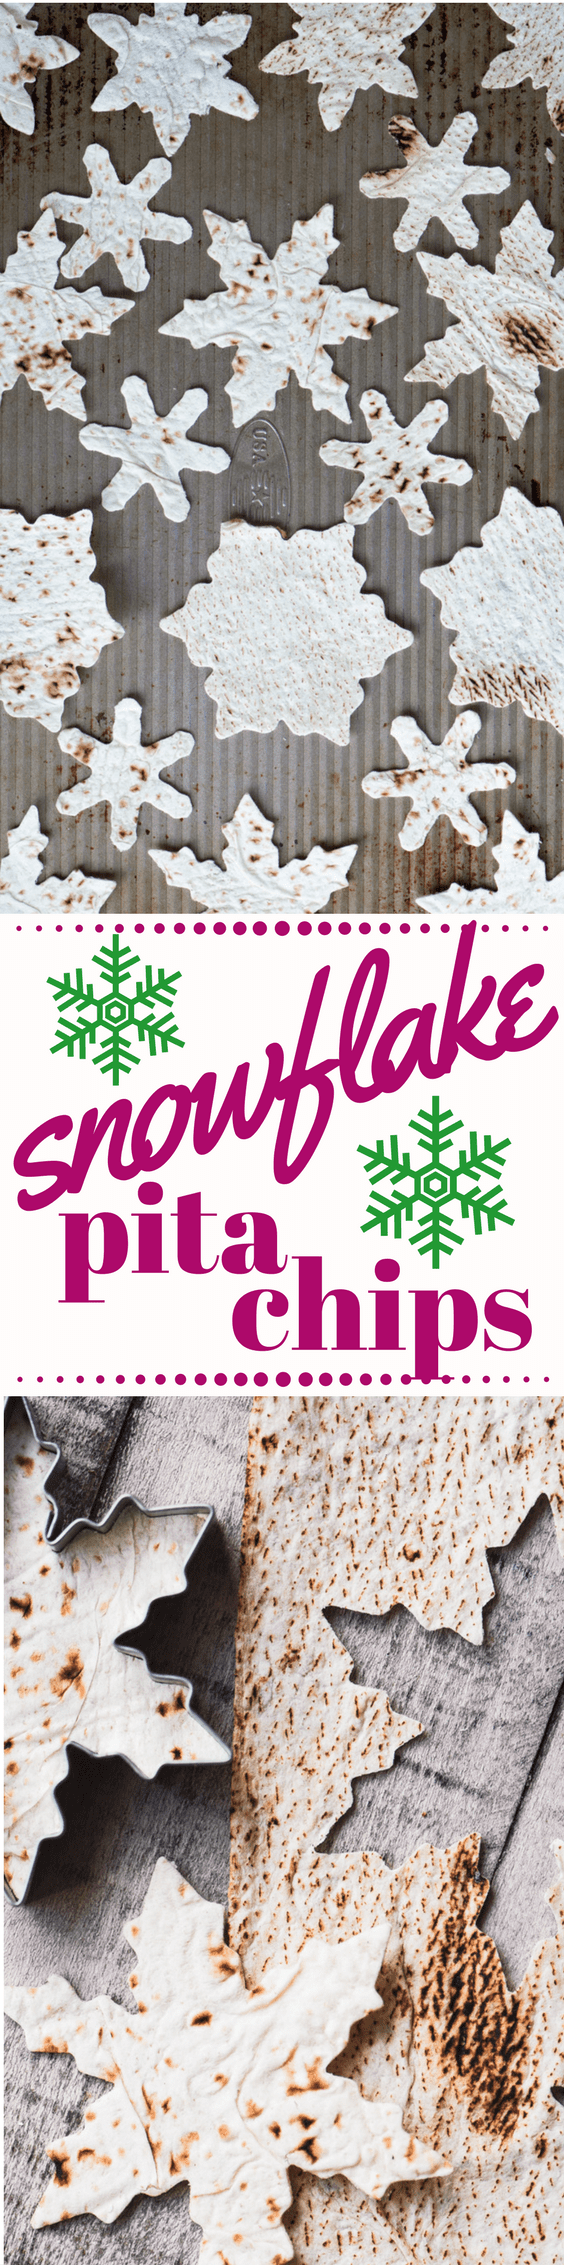 Homemade Snowflake Pita Chips are a fun and festive way to add a little pizazz to your appetizers this season ~ they're so cute, and they're baked, not fried, so they're healthy too! #appetizer #pitachips #holidayappetizer #tortillachips